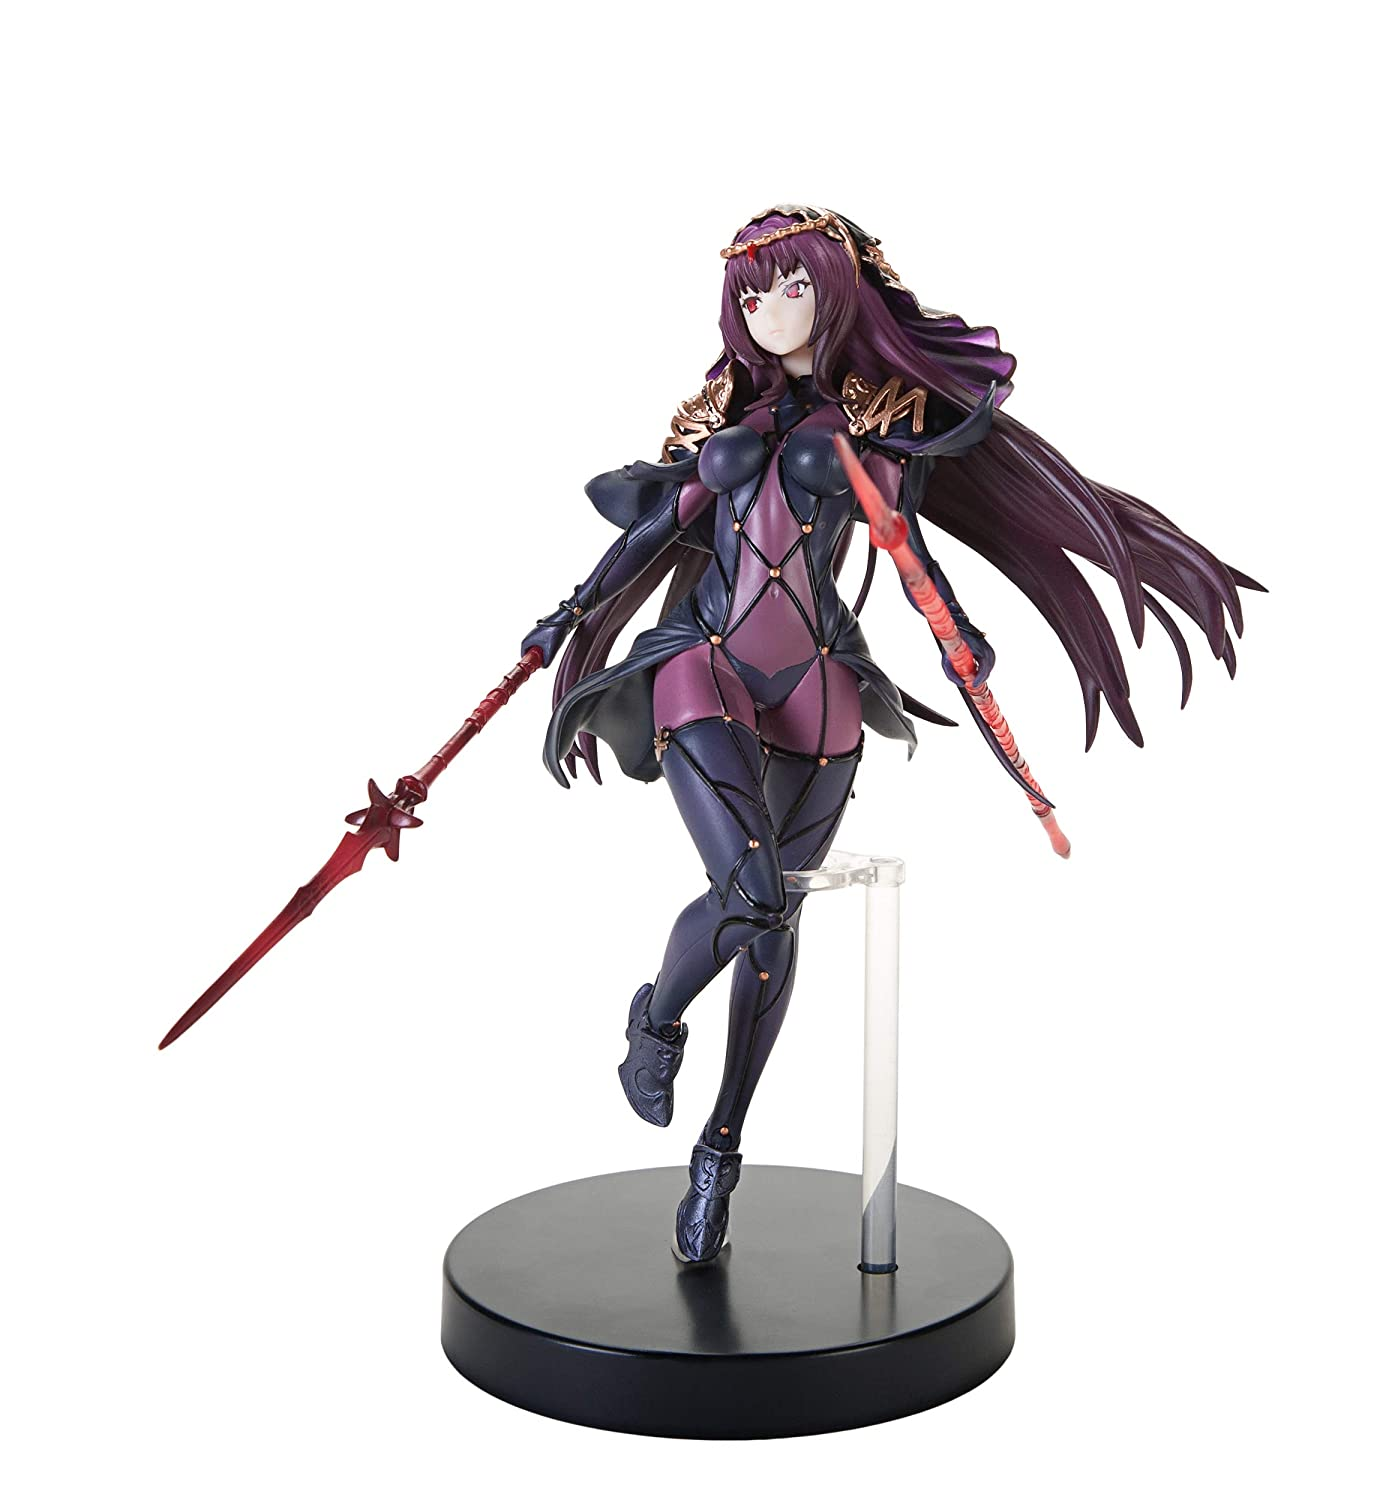 Furyu Fate Grand Order Lancer Scathach Third Ascension Action Figure 7